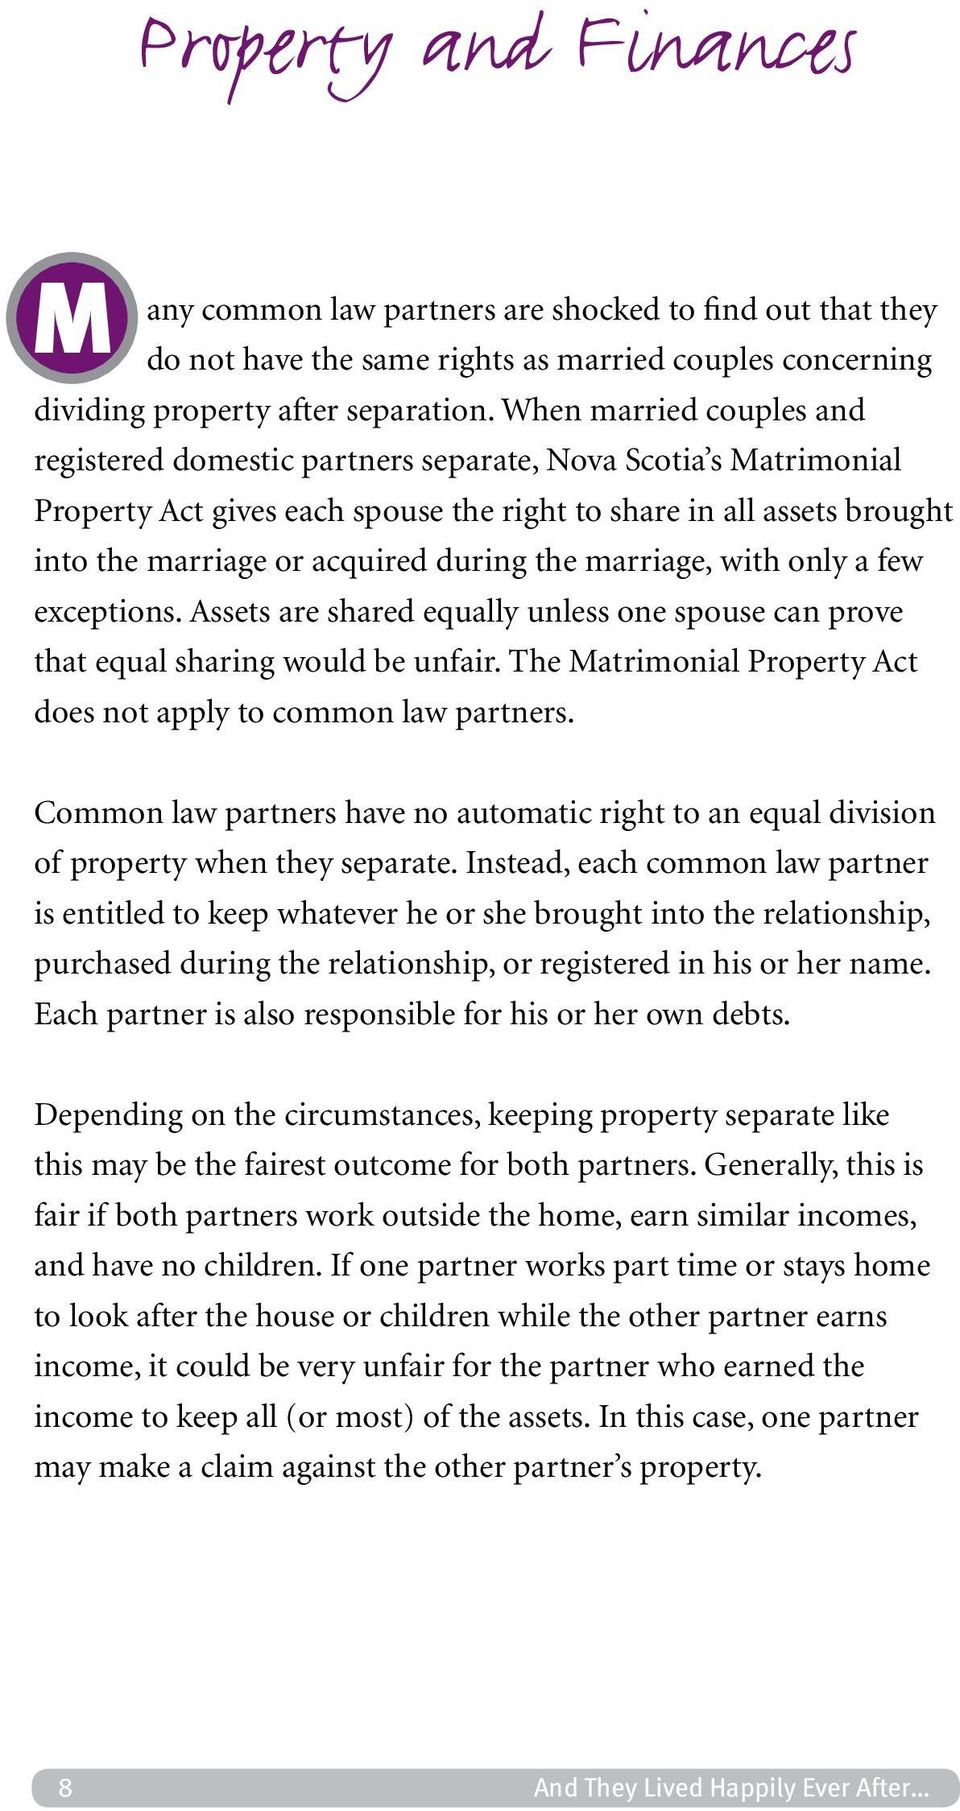 the marriage, with only a few exceptions. Assets are shared equally unless one spouse can prove that equal sharing would be unfair. The Matrimonial Property Act does not apply to common law partners.